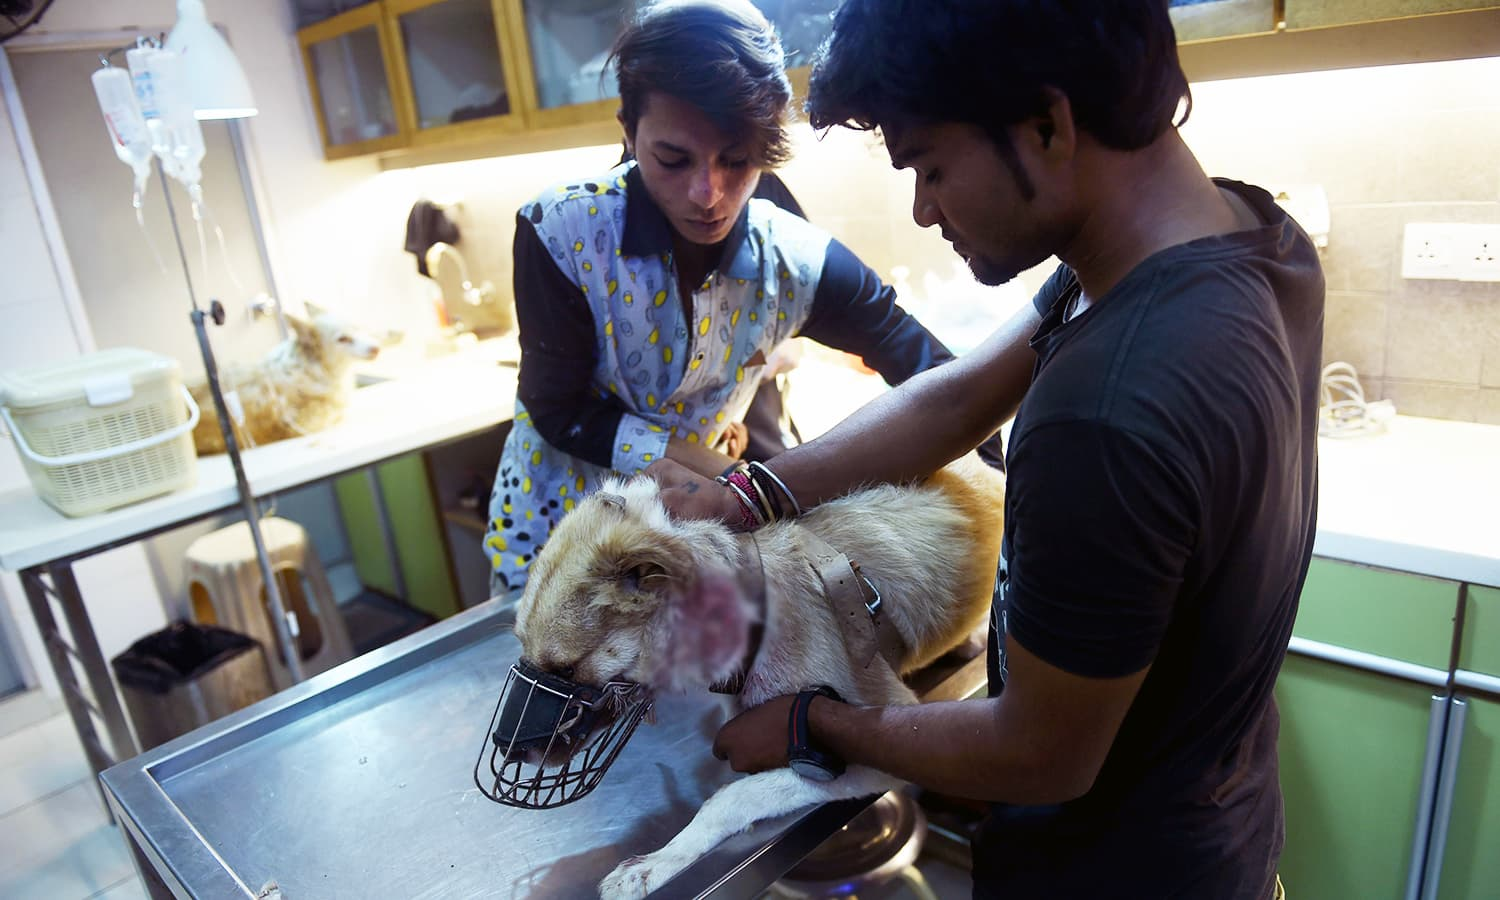 In this photo taken on August 16, veterinarians give treatment to a dog at the Animal Care Centre. — AFP